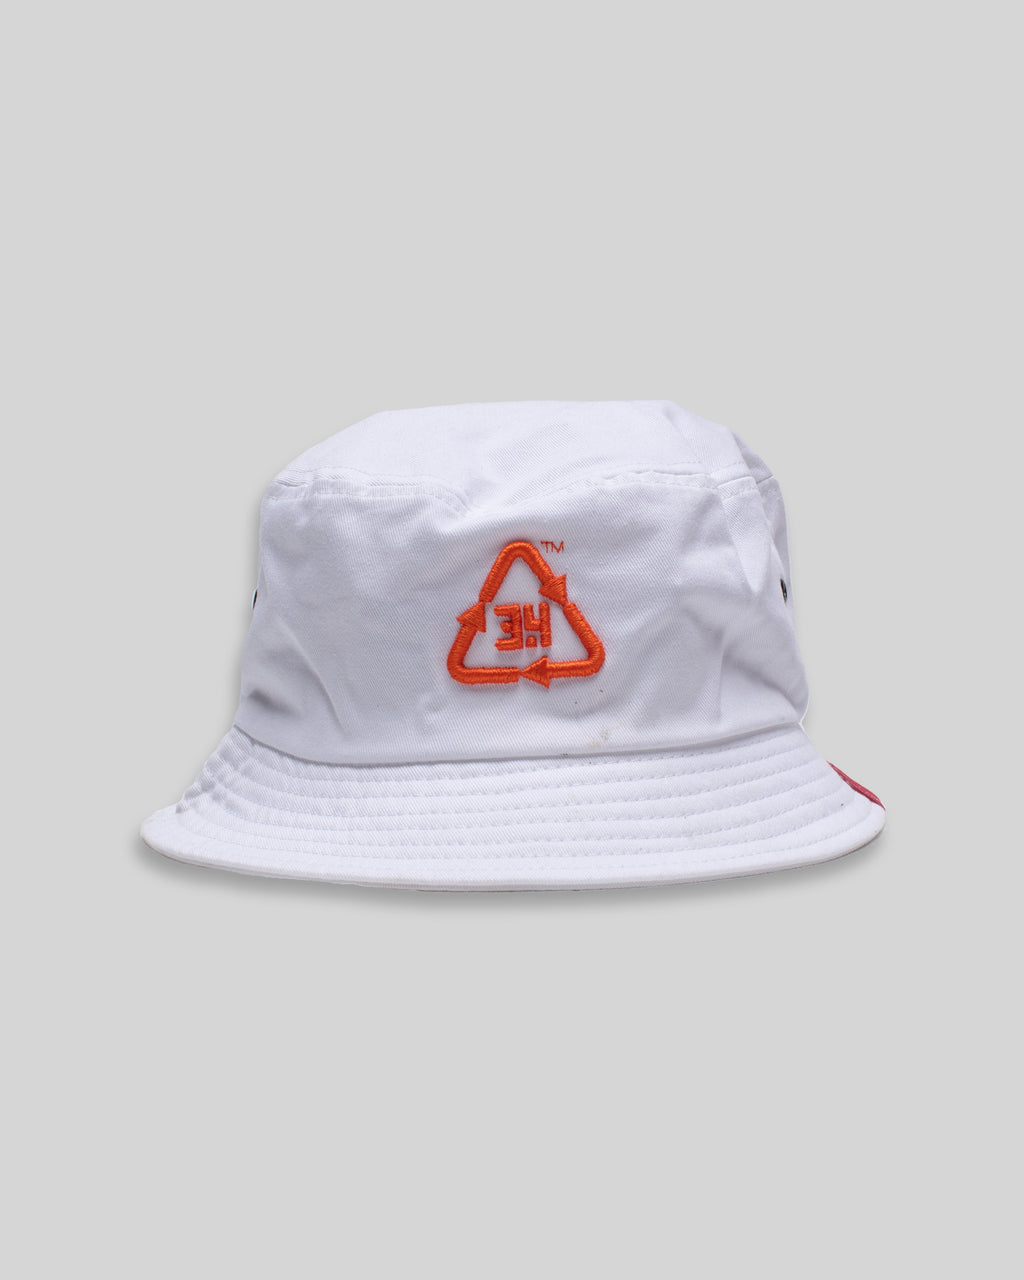 3.4 Metal Eyelet Bucket Hat 1